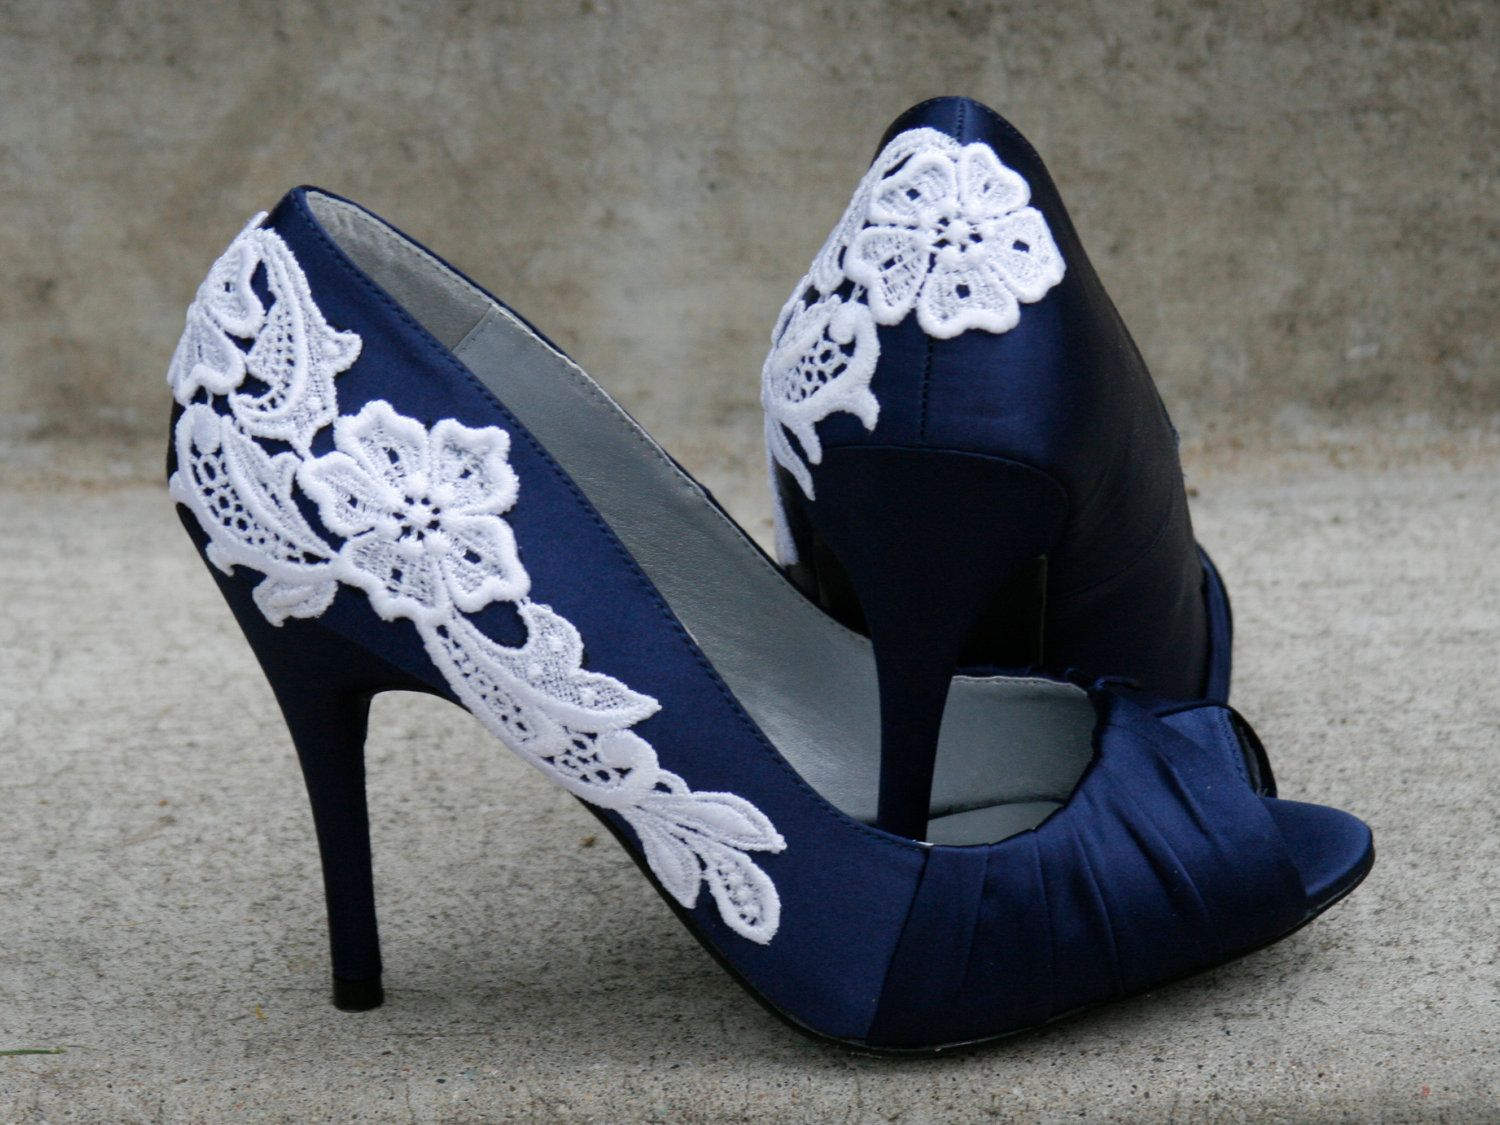 Navy Blue Shoes With Venise Lace Applique. Size 7. $69.00 ...